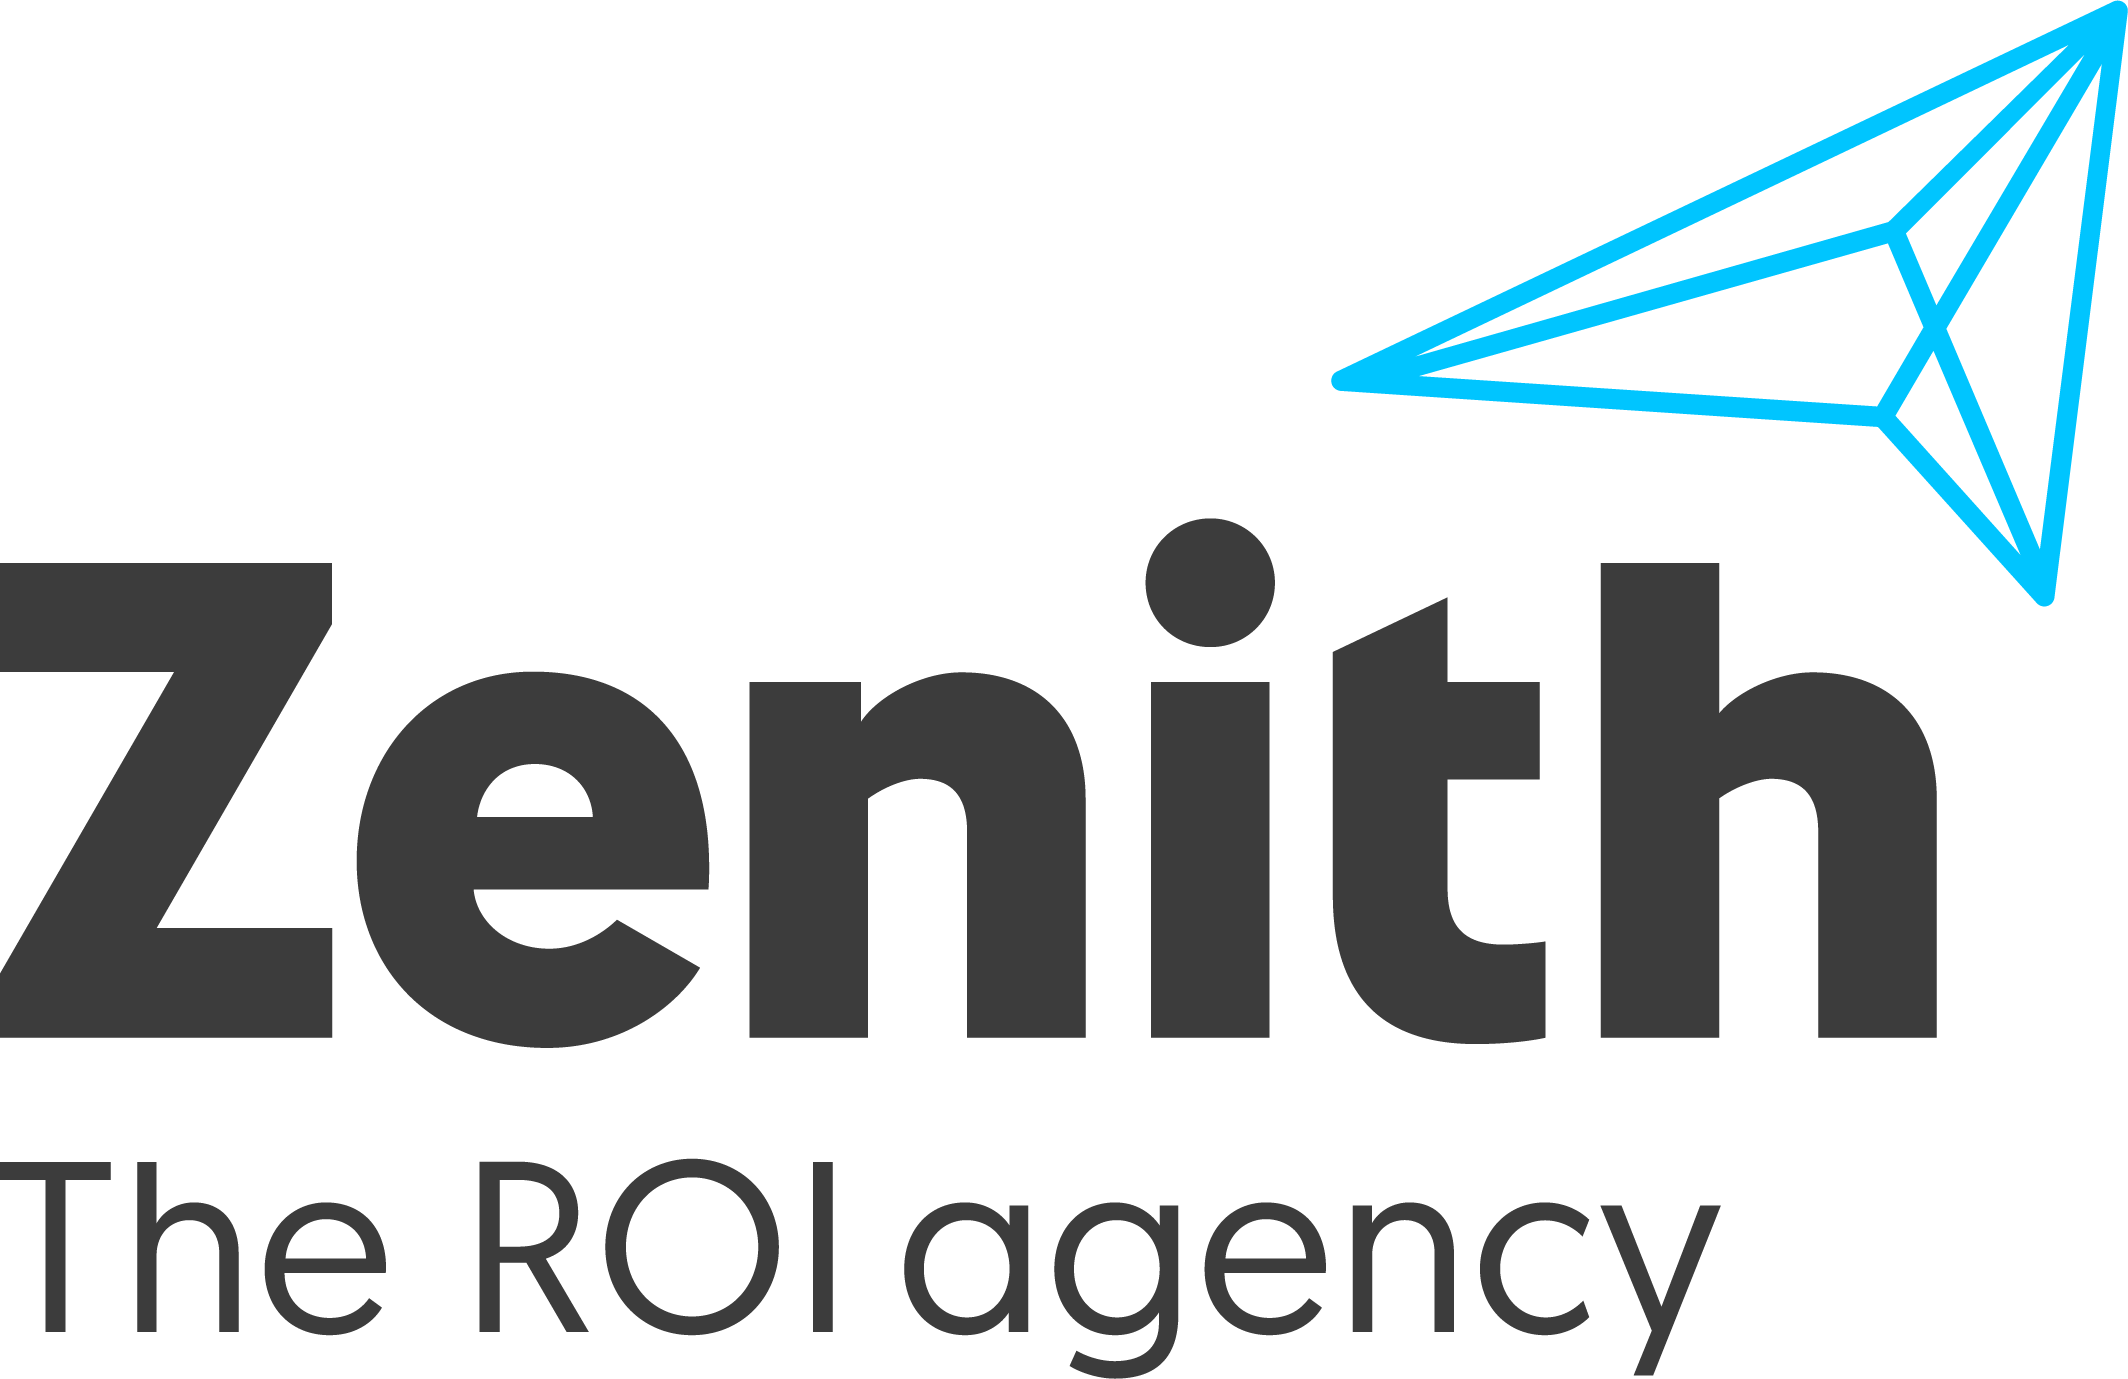 Advertising Agency Zenith Moldova Logo Image.